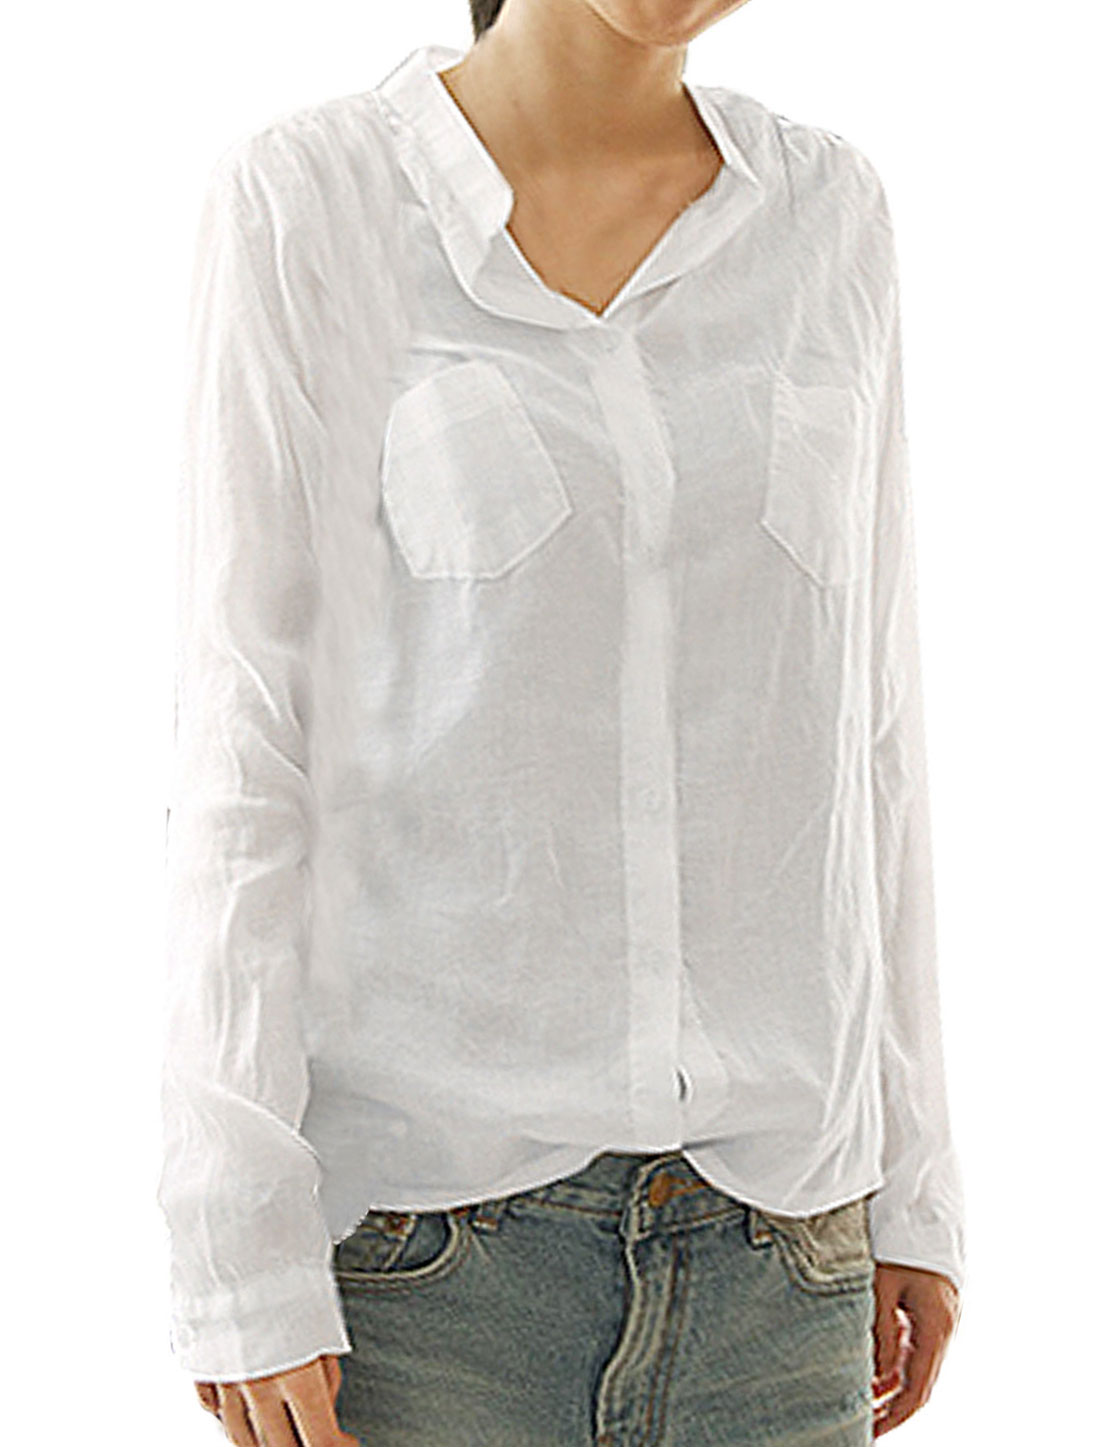 XS White Button Cuff Closure Stand Collar Blouse for Women